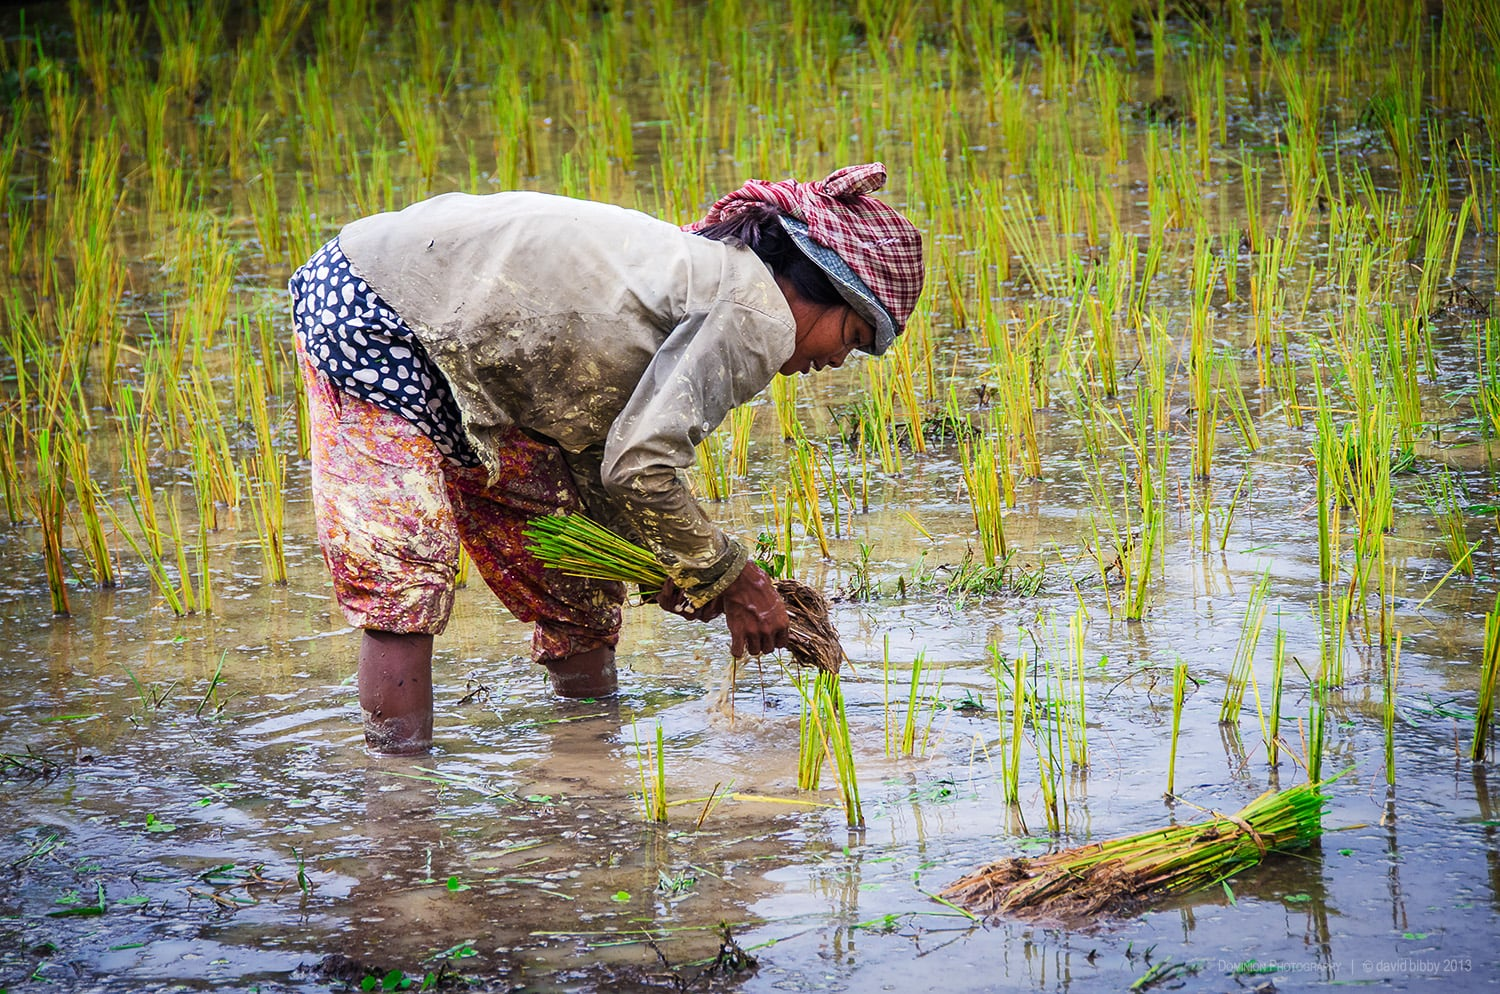 Hard labour  - Planting rice is very hard work and not great for the spine. Kampong Cham Province, Cambodia.